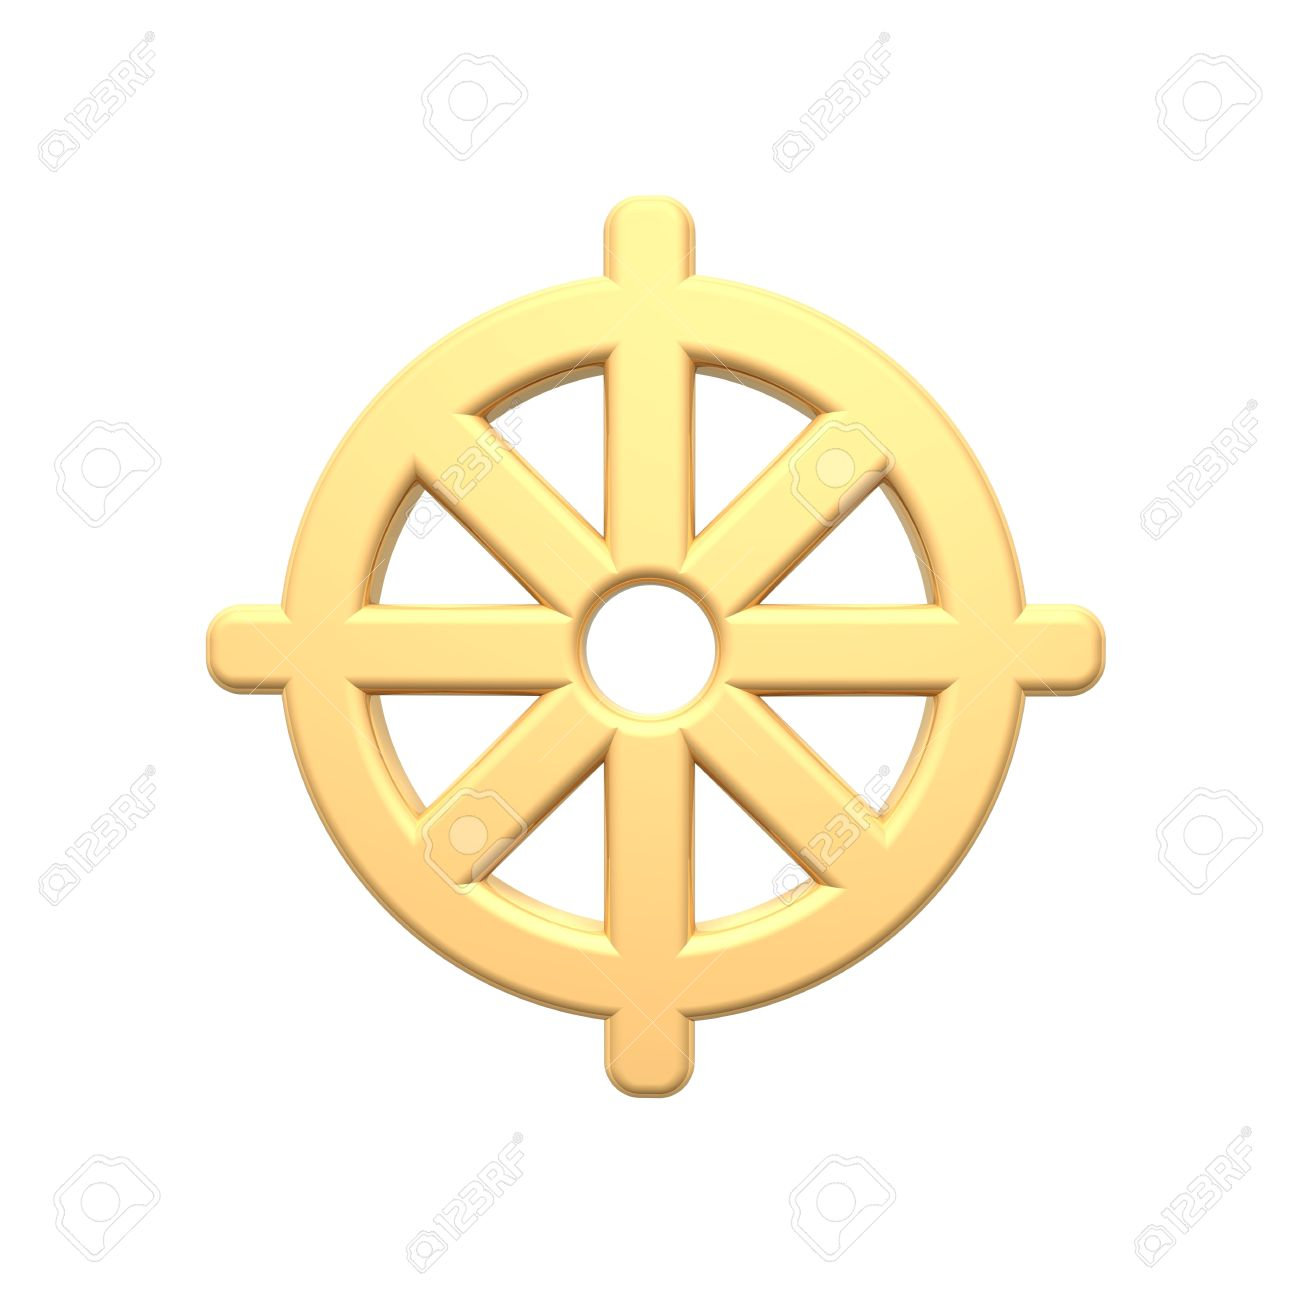 Gold Buddhism Symbol. Computer Generated 3D Photo Rendering. Stock ...